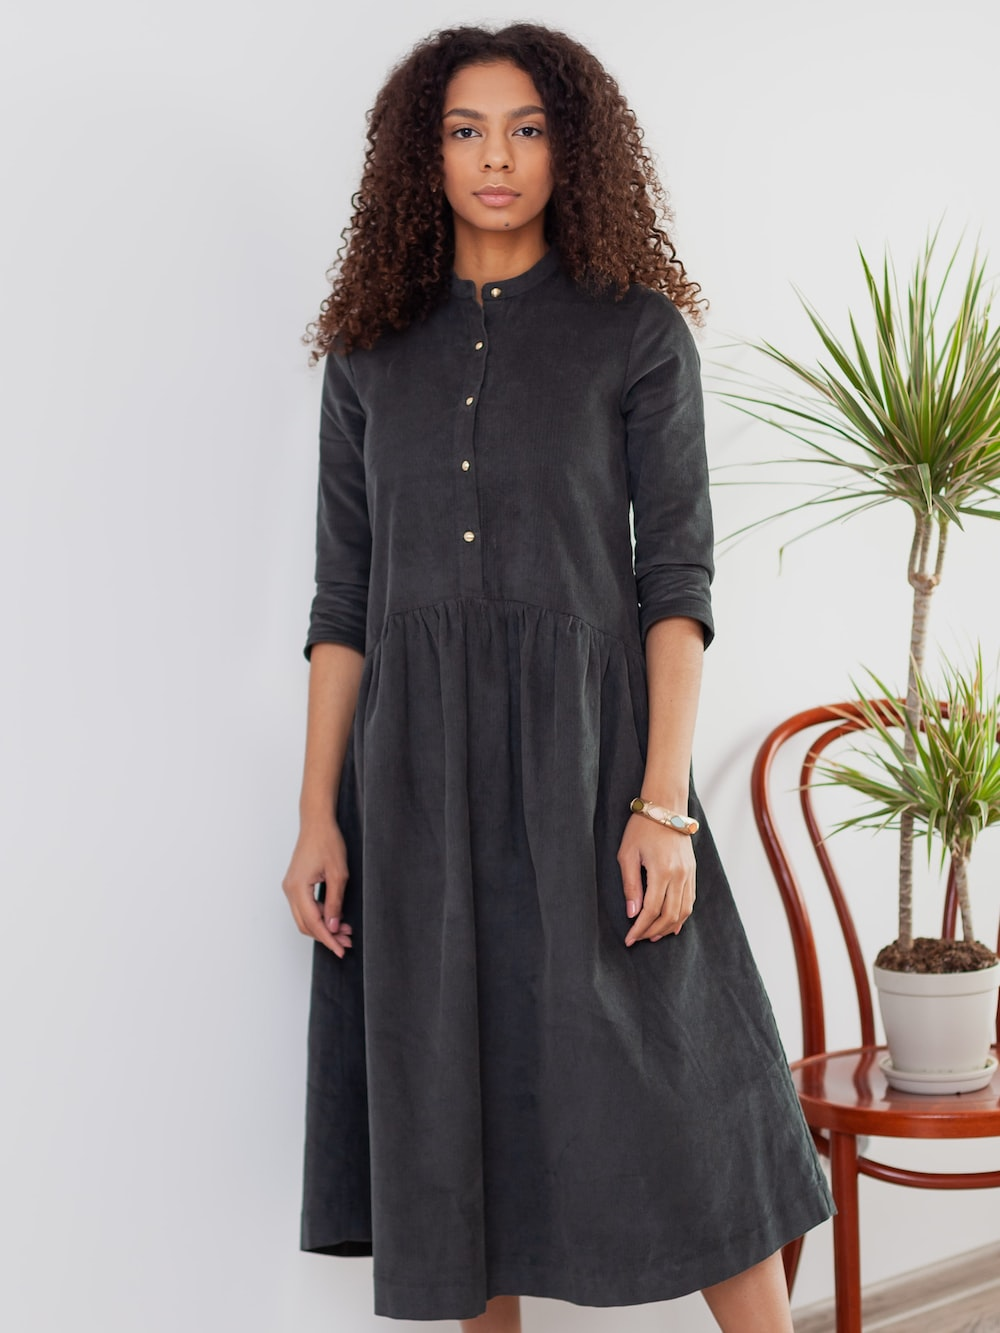 woman in black button up dress standing near green plant